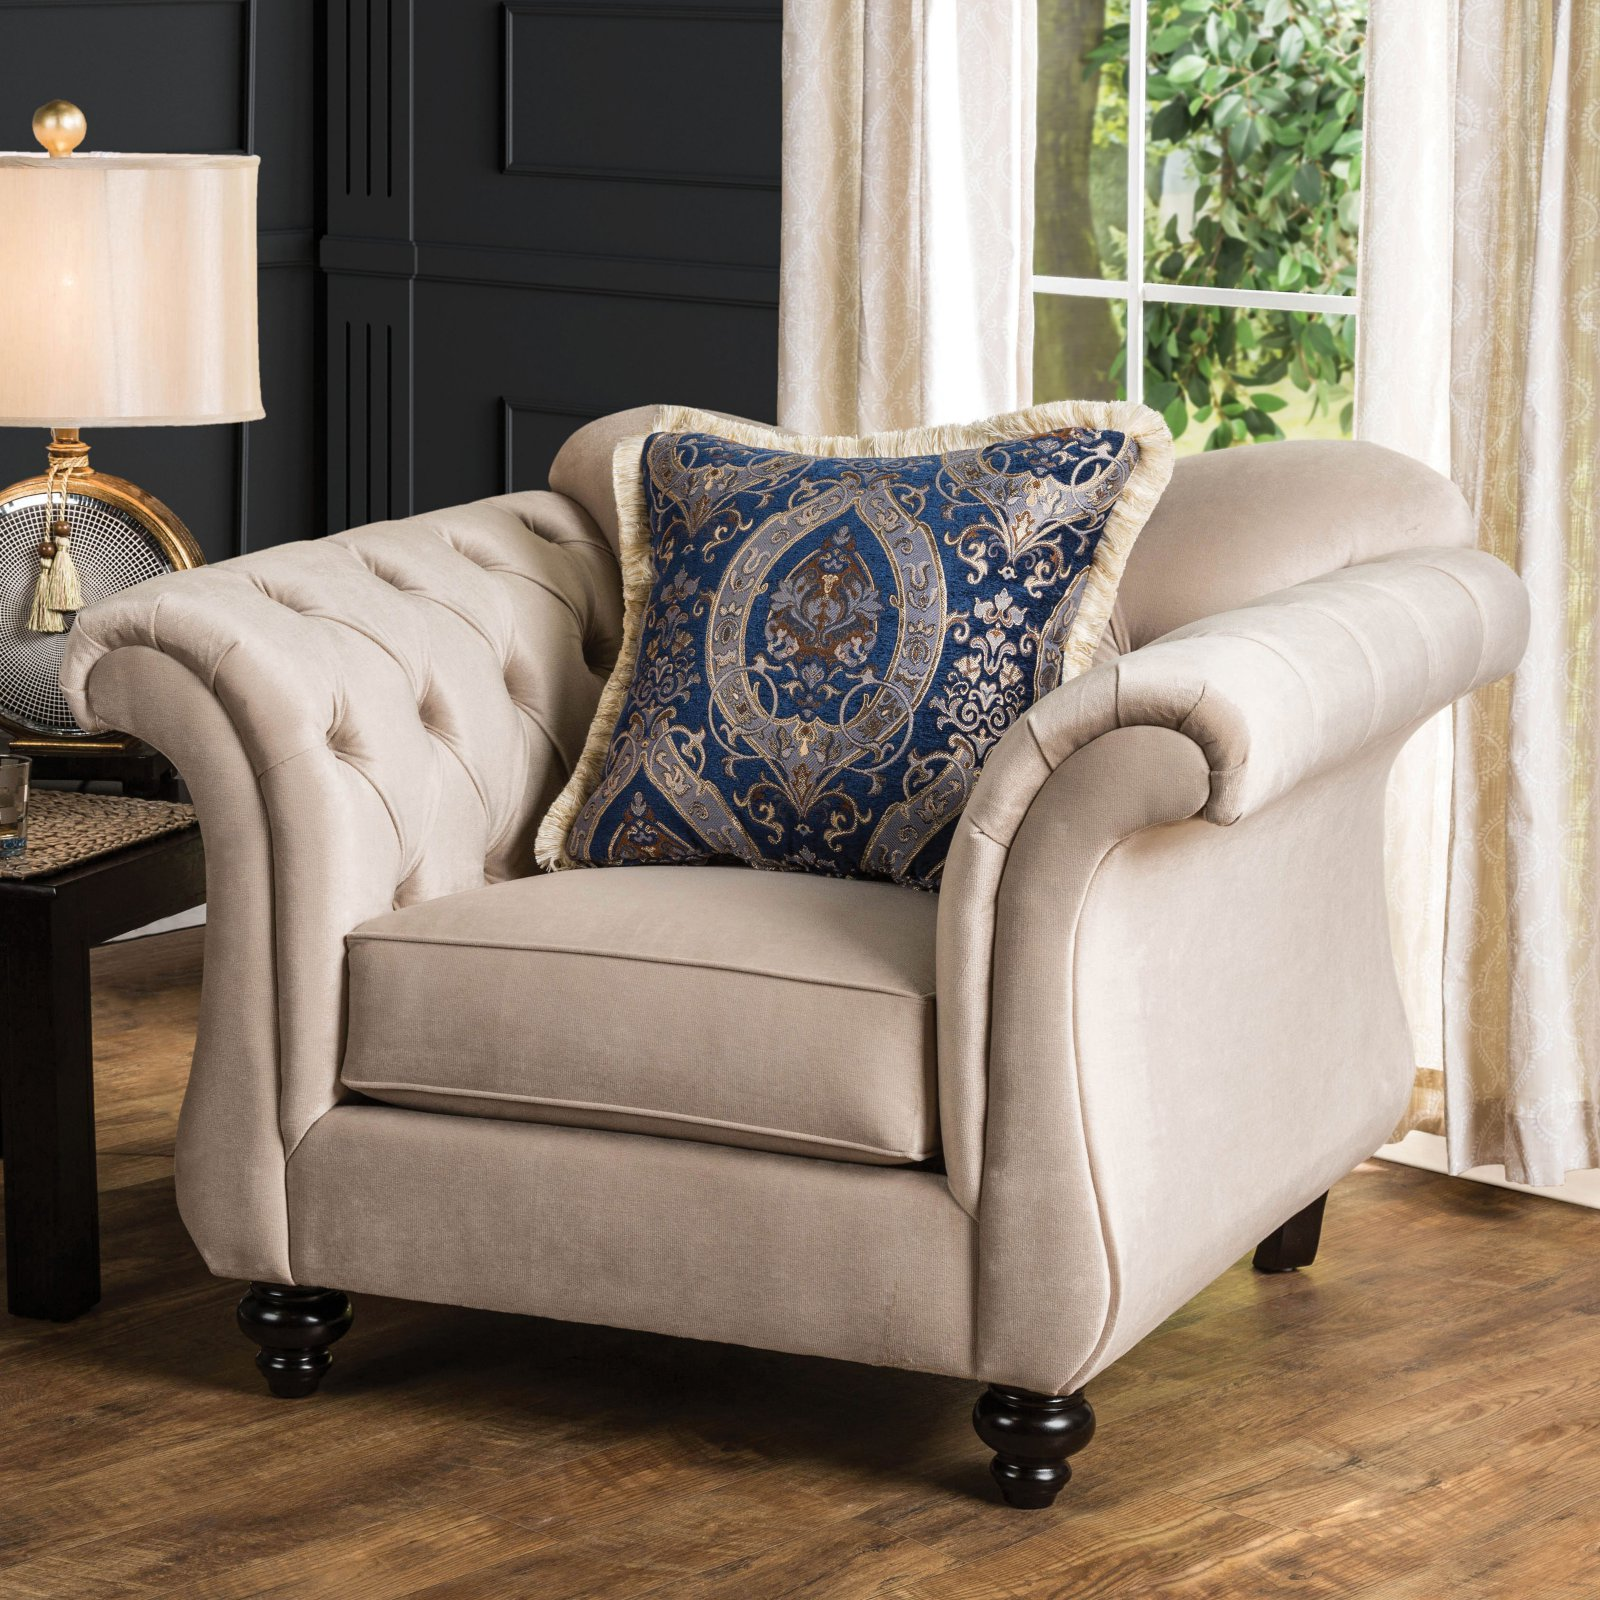 Furniture of America Octavius Chesterfield Club Chair with Pillows